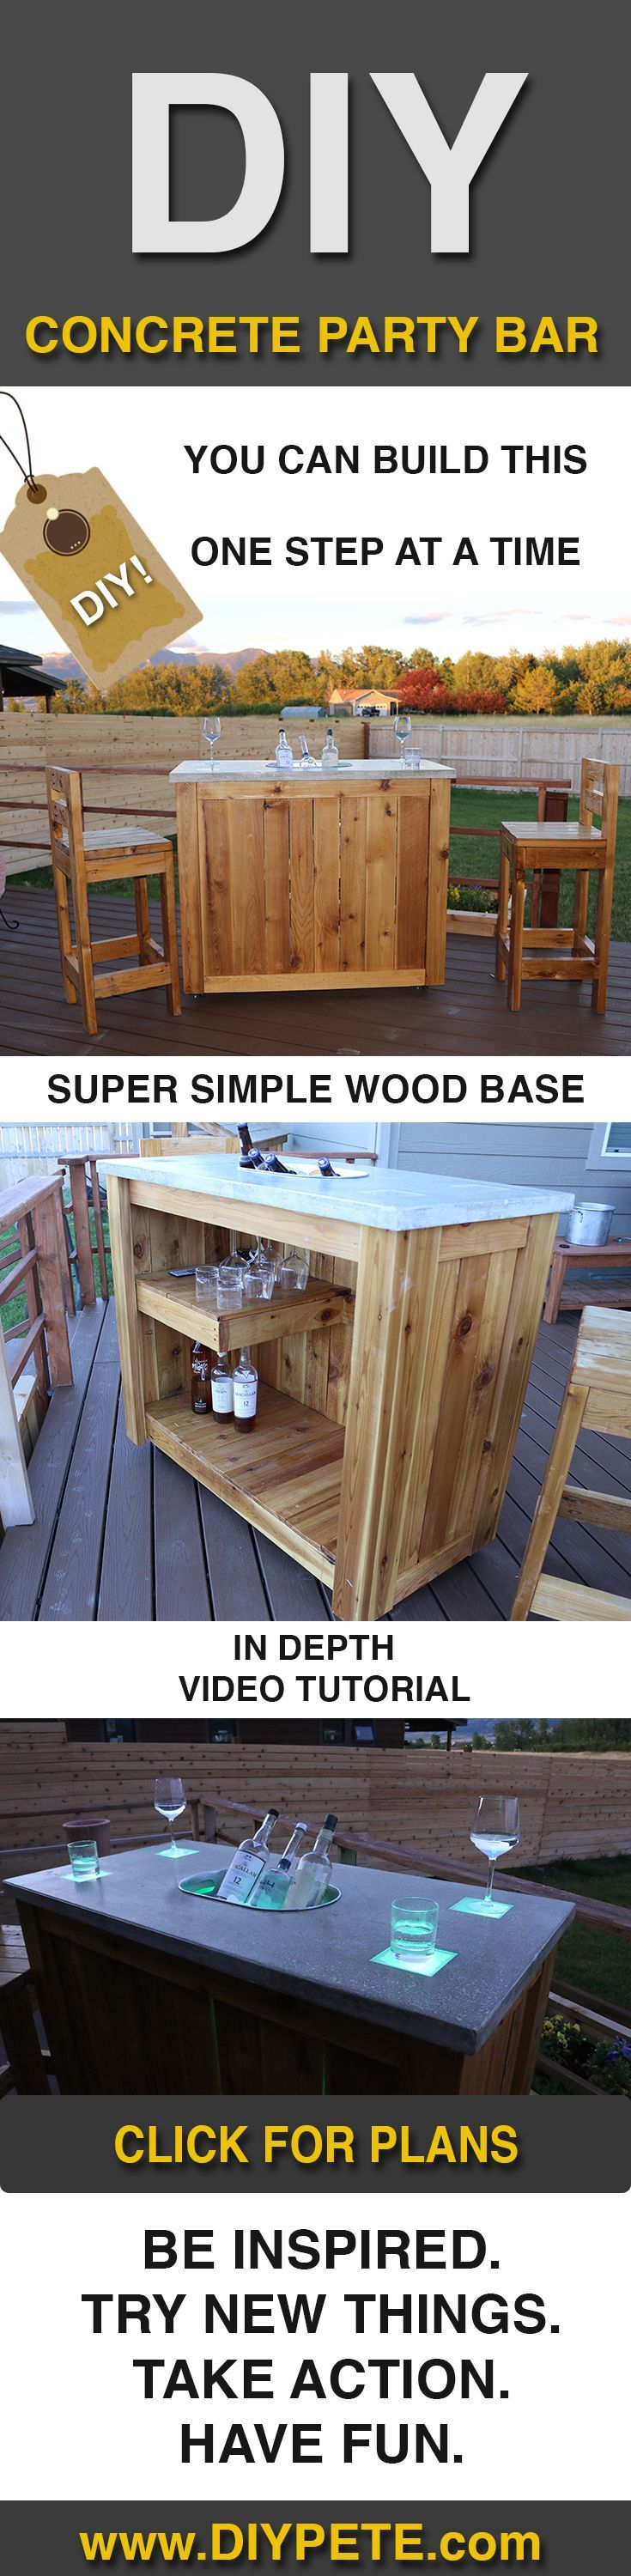 470d3b070b5eb8767738410c87280d8f--woodworking-plans-woodworking-projects Unique De Abri Velo Brico Depot